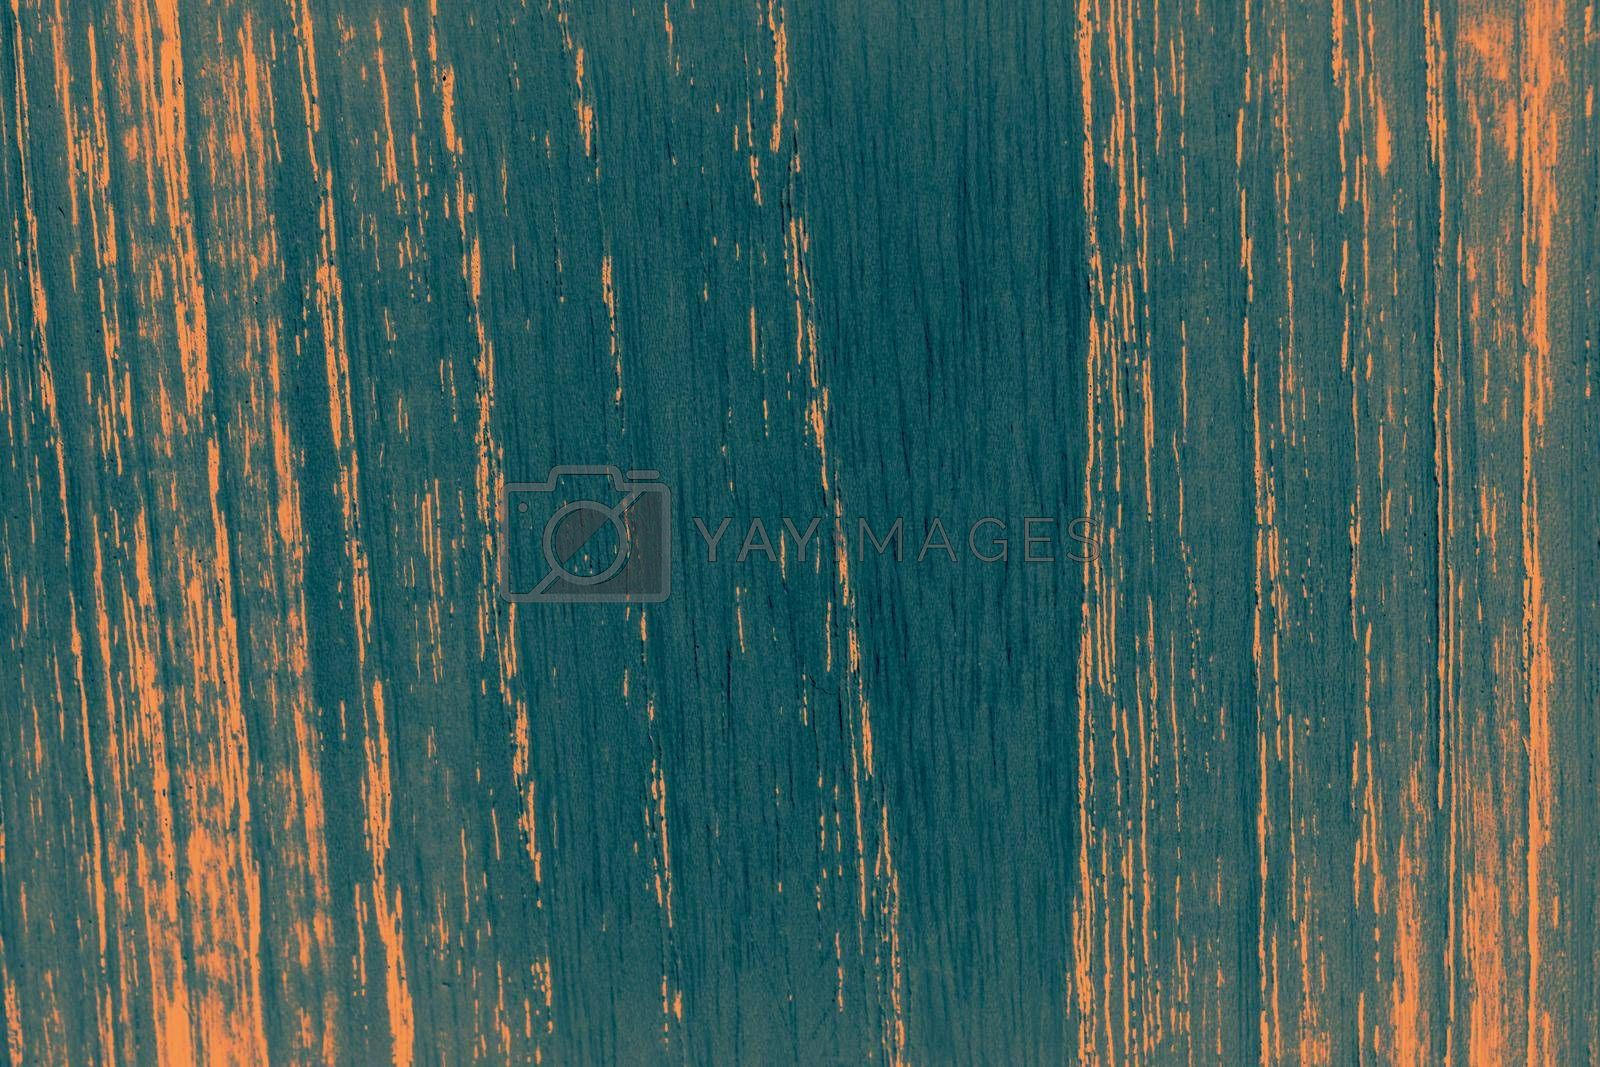 Vintage rustic pattern background on wooden planks